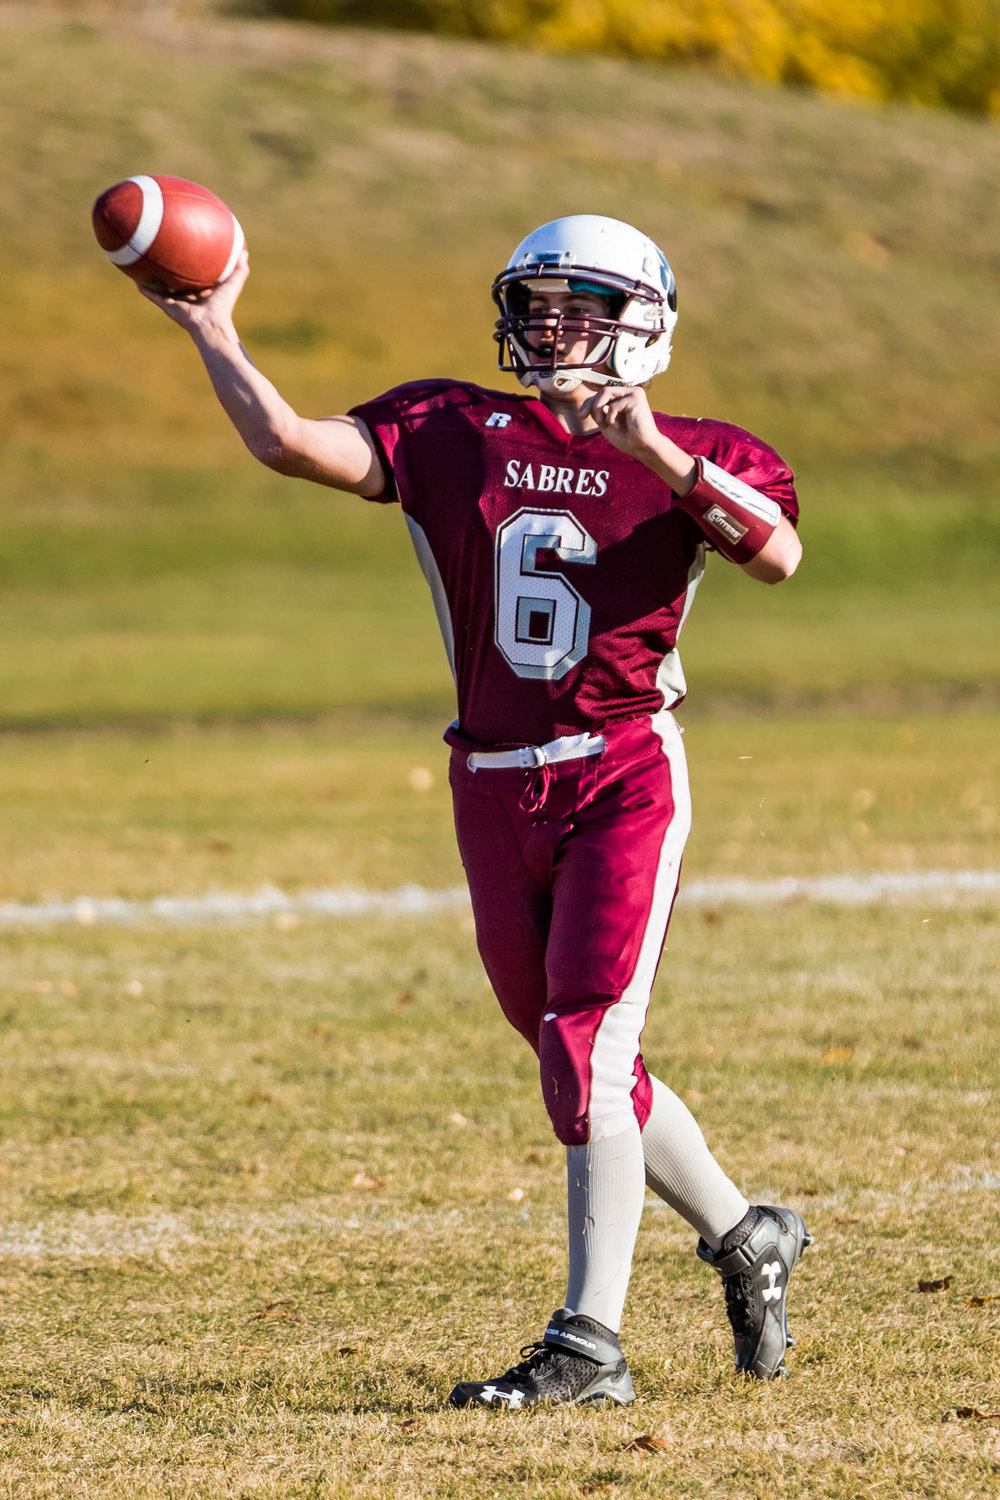 0218_macklinsabres_haguepanthers_football_September 30, 2016.jpg